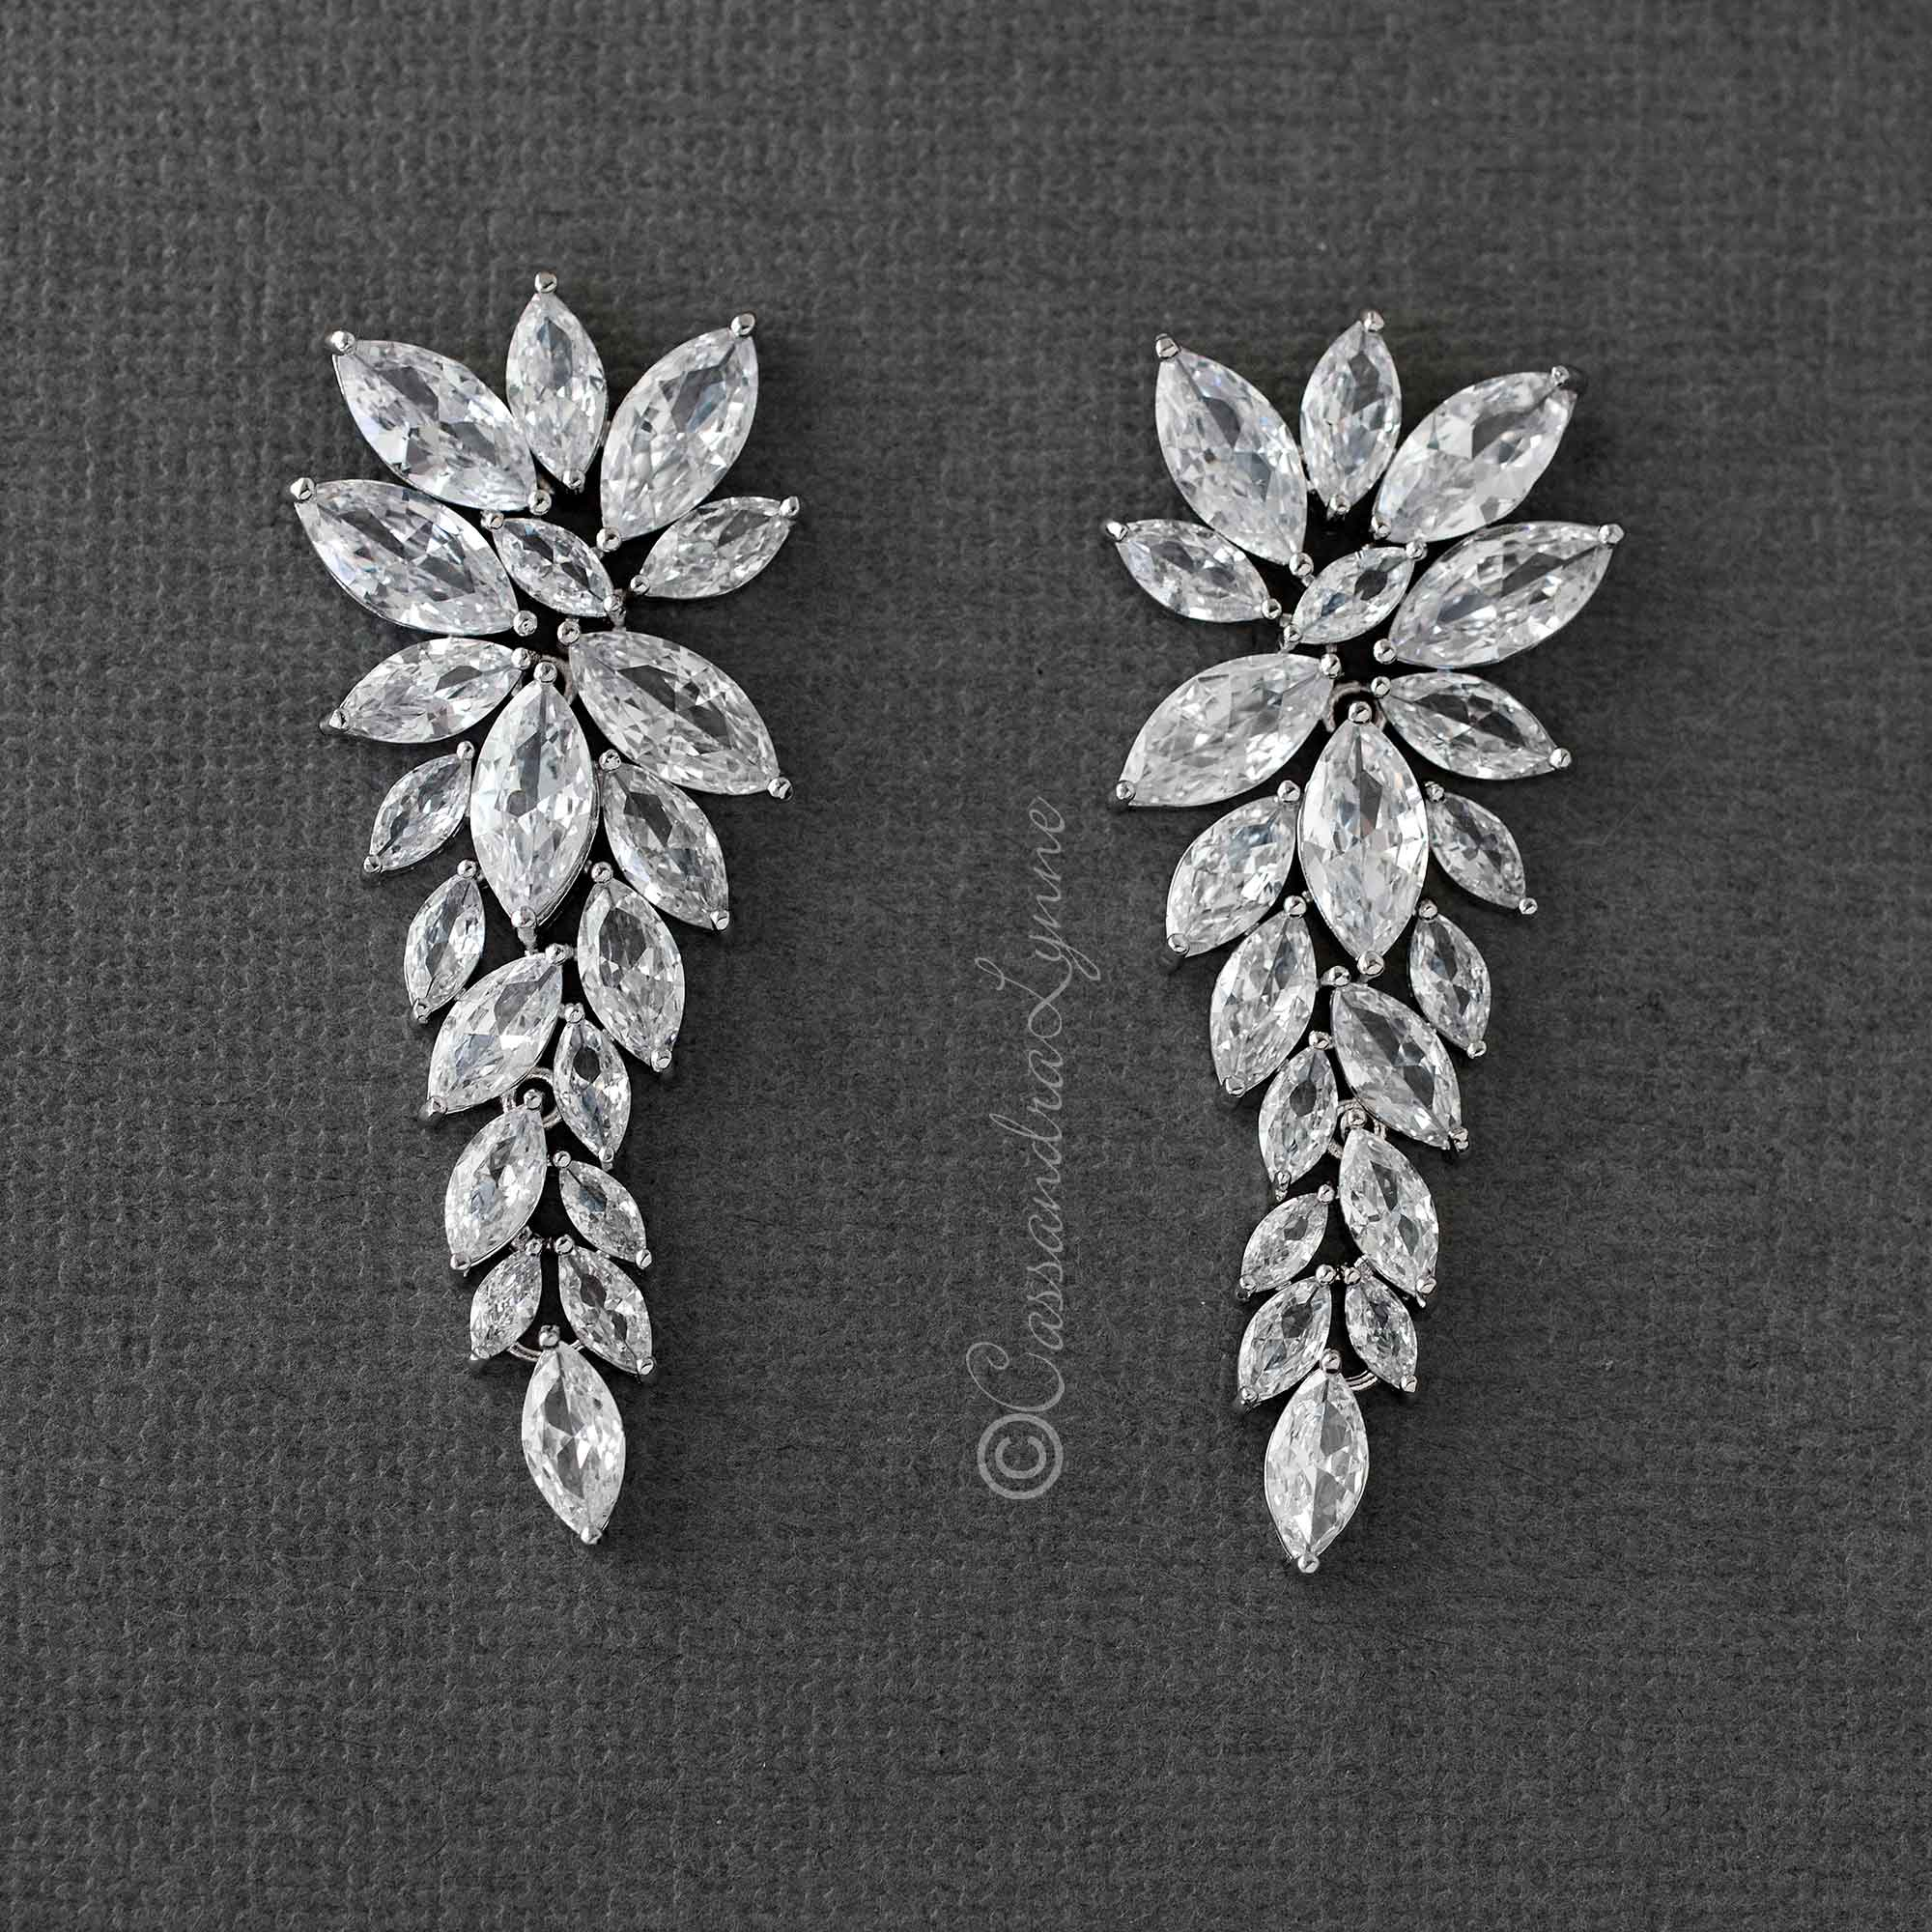 CZ Bridal Earrings of Leaf Clusters